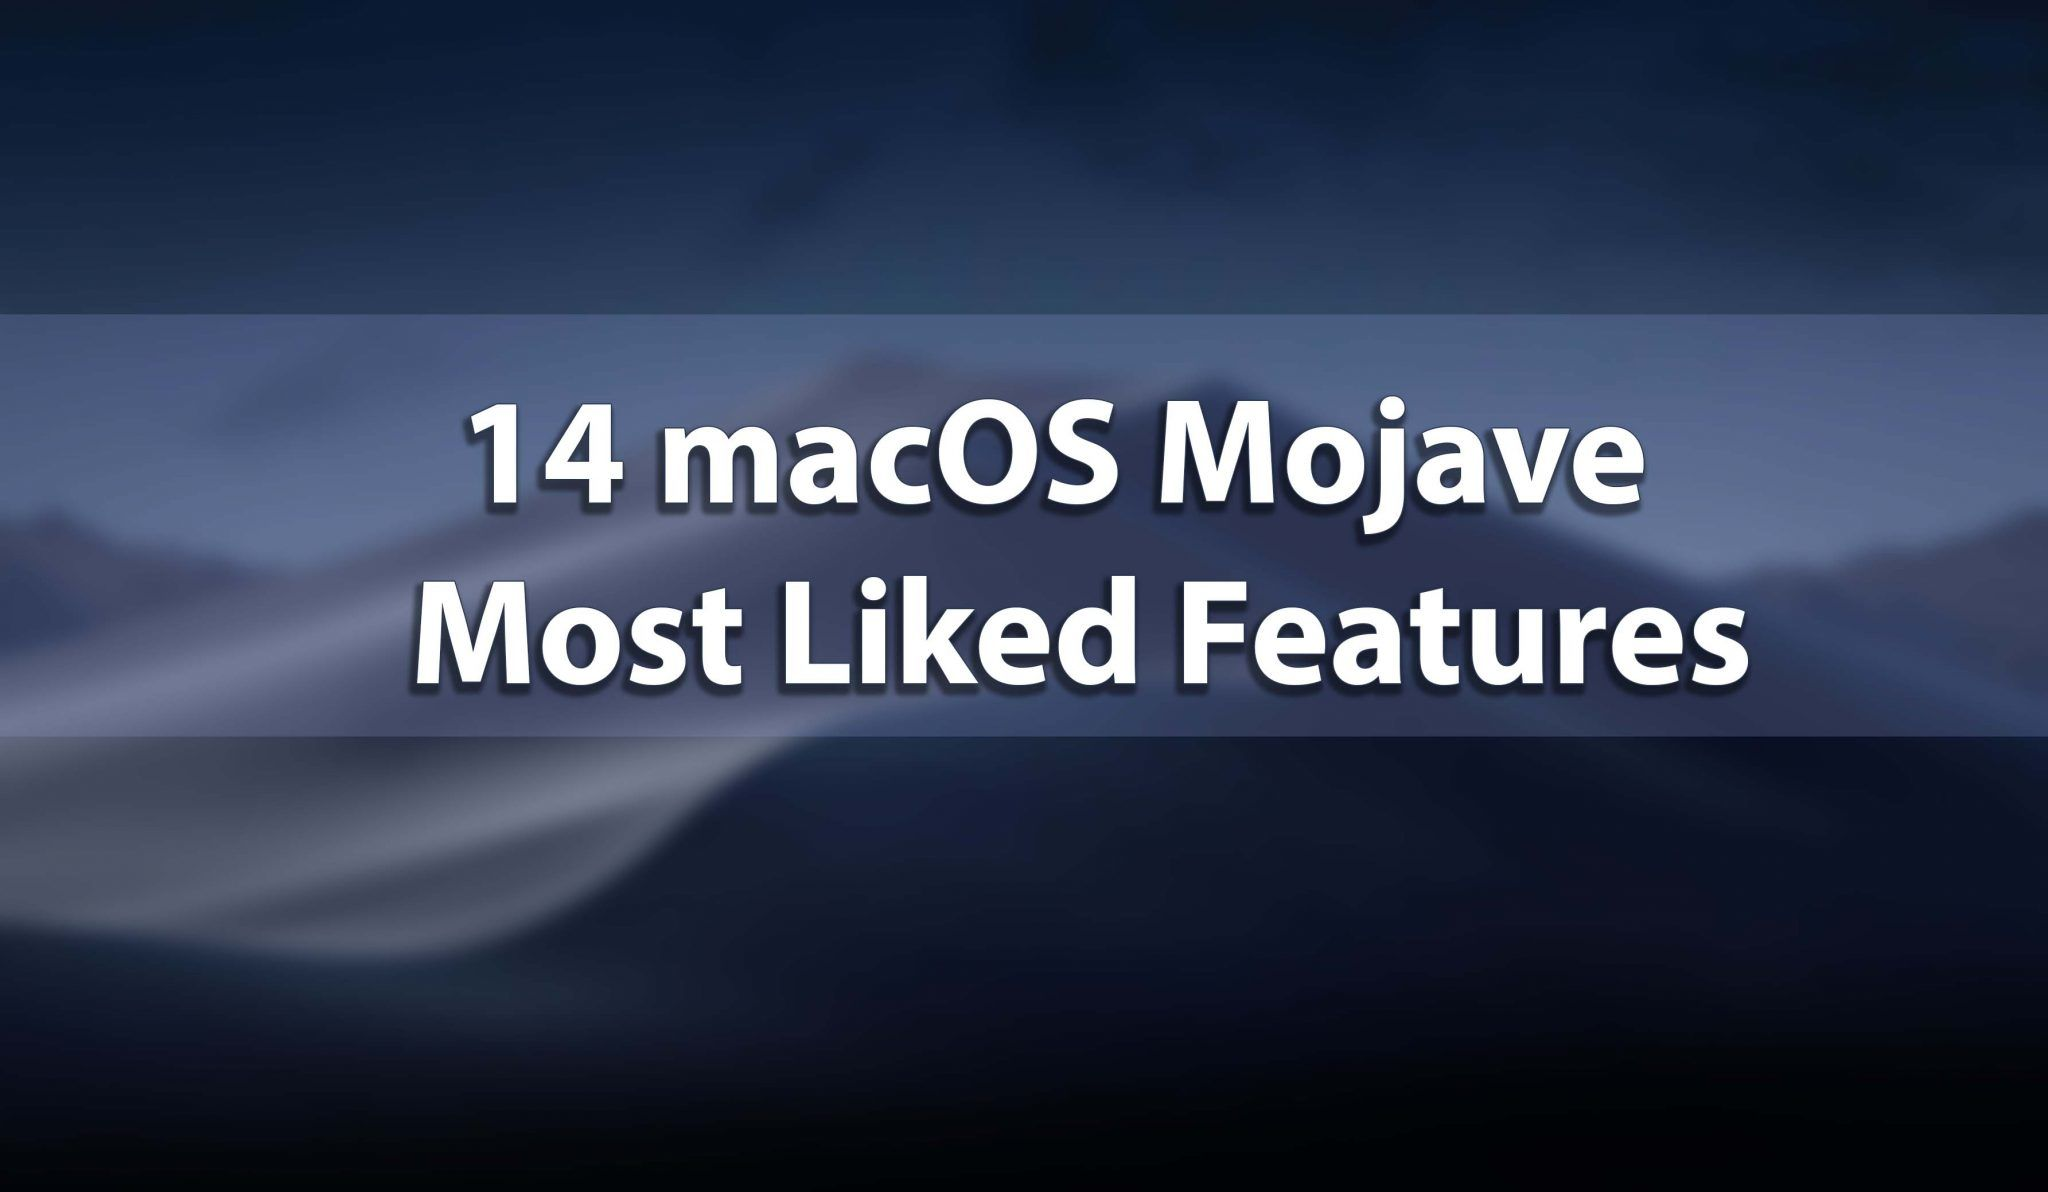 macOS Mojave 14 Most Like Features